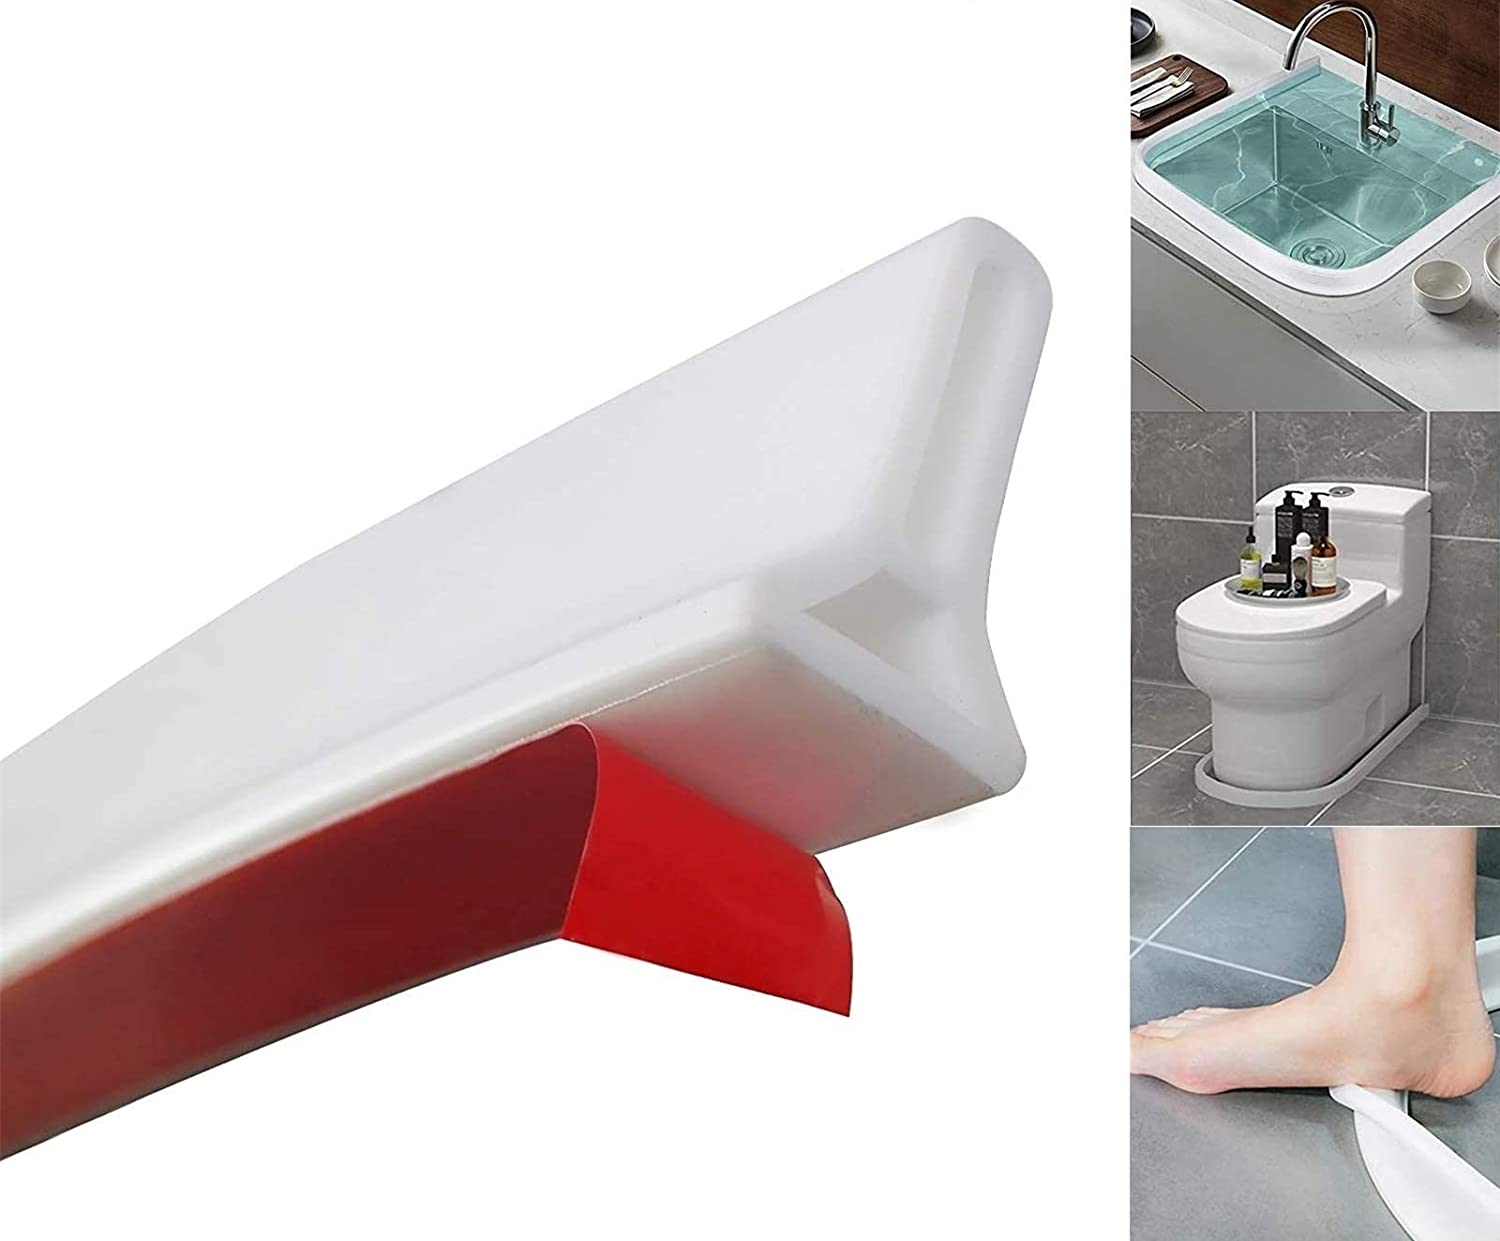 96 Inch Collapsible Shower Threshold - Water Dam - Water Flood Barrier - Water Stopper for Shower - Shower Floor Water retaining Strip, Shower Protection System, Keeps Water Inside Threshold